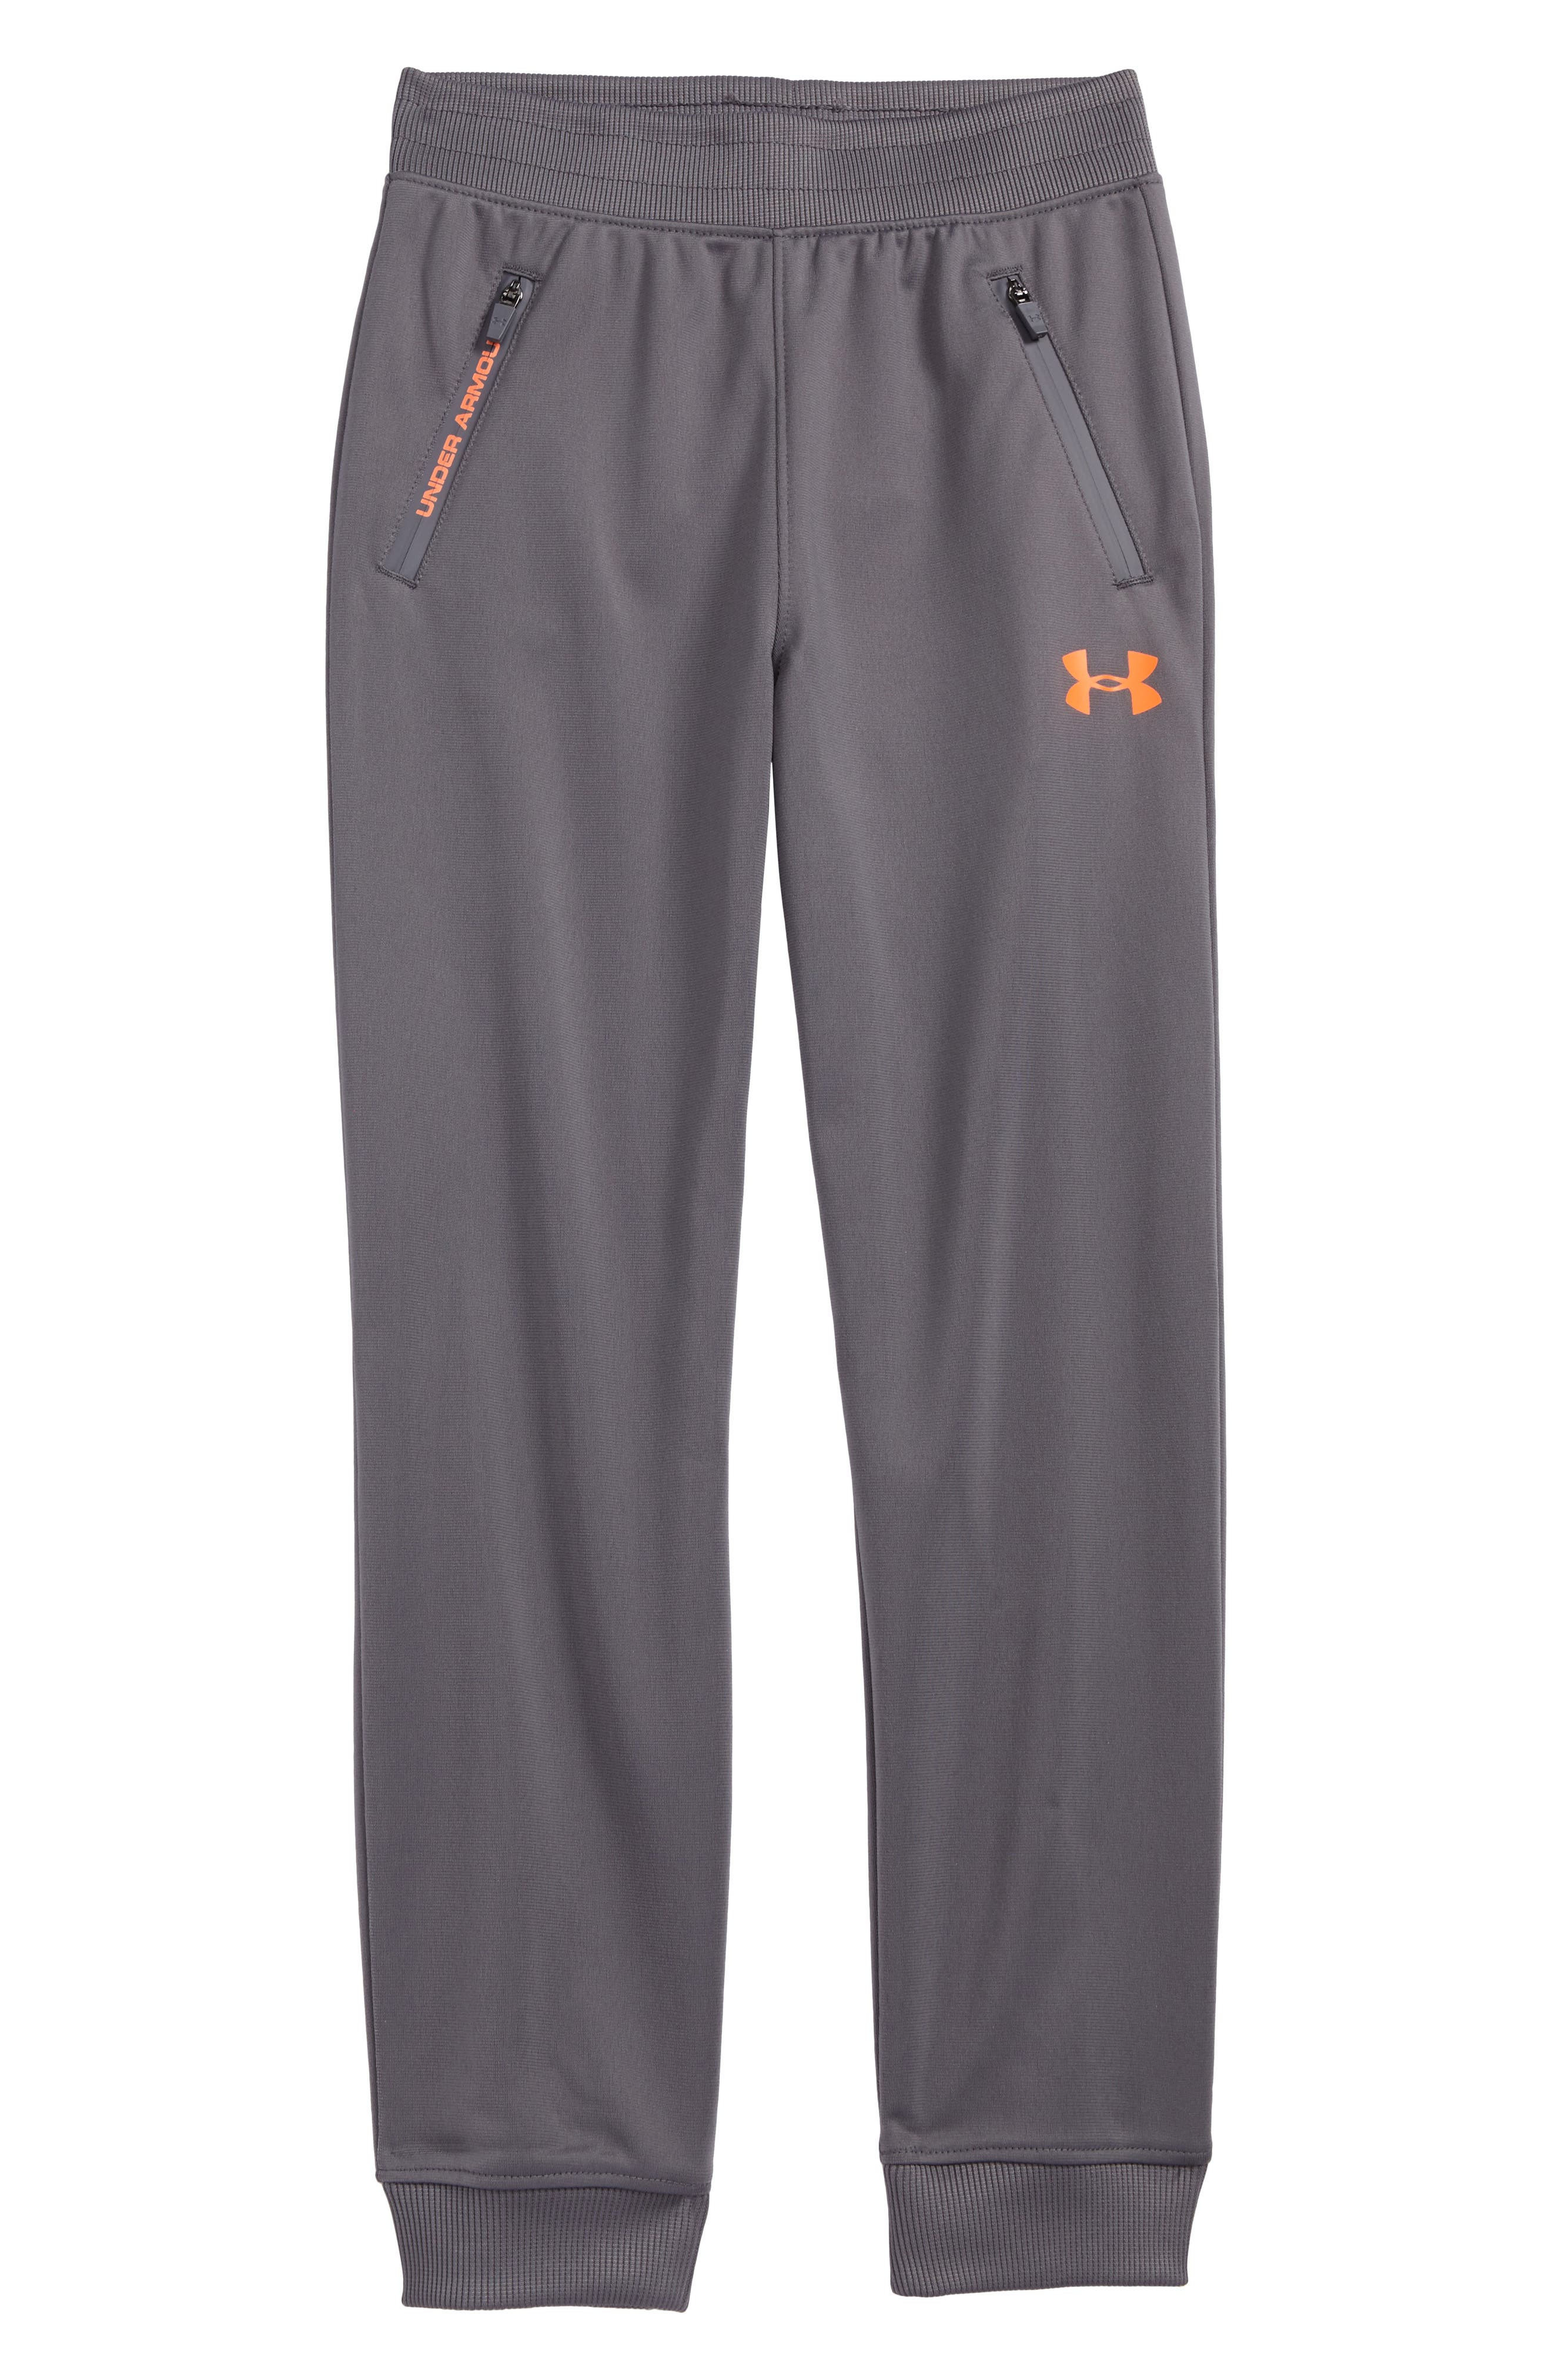 Under Armour Pennant 2.0 Tapered Pants (Toddler Boys & Little Boys)